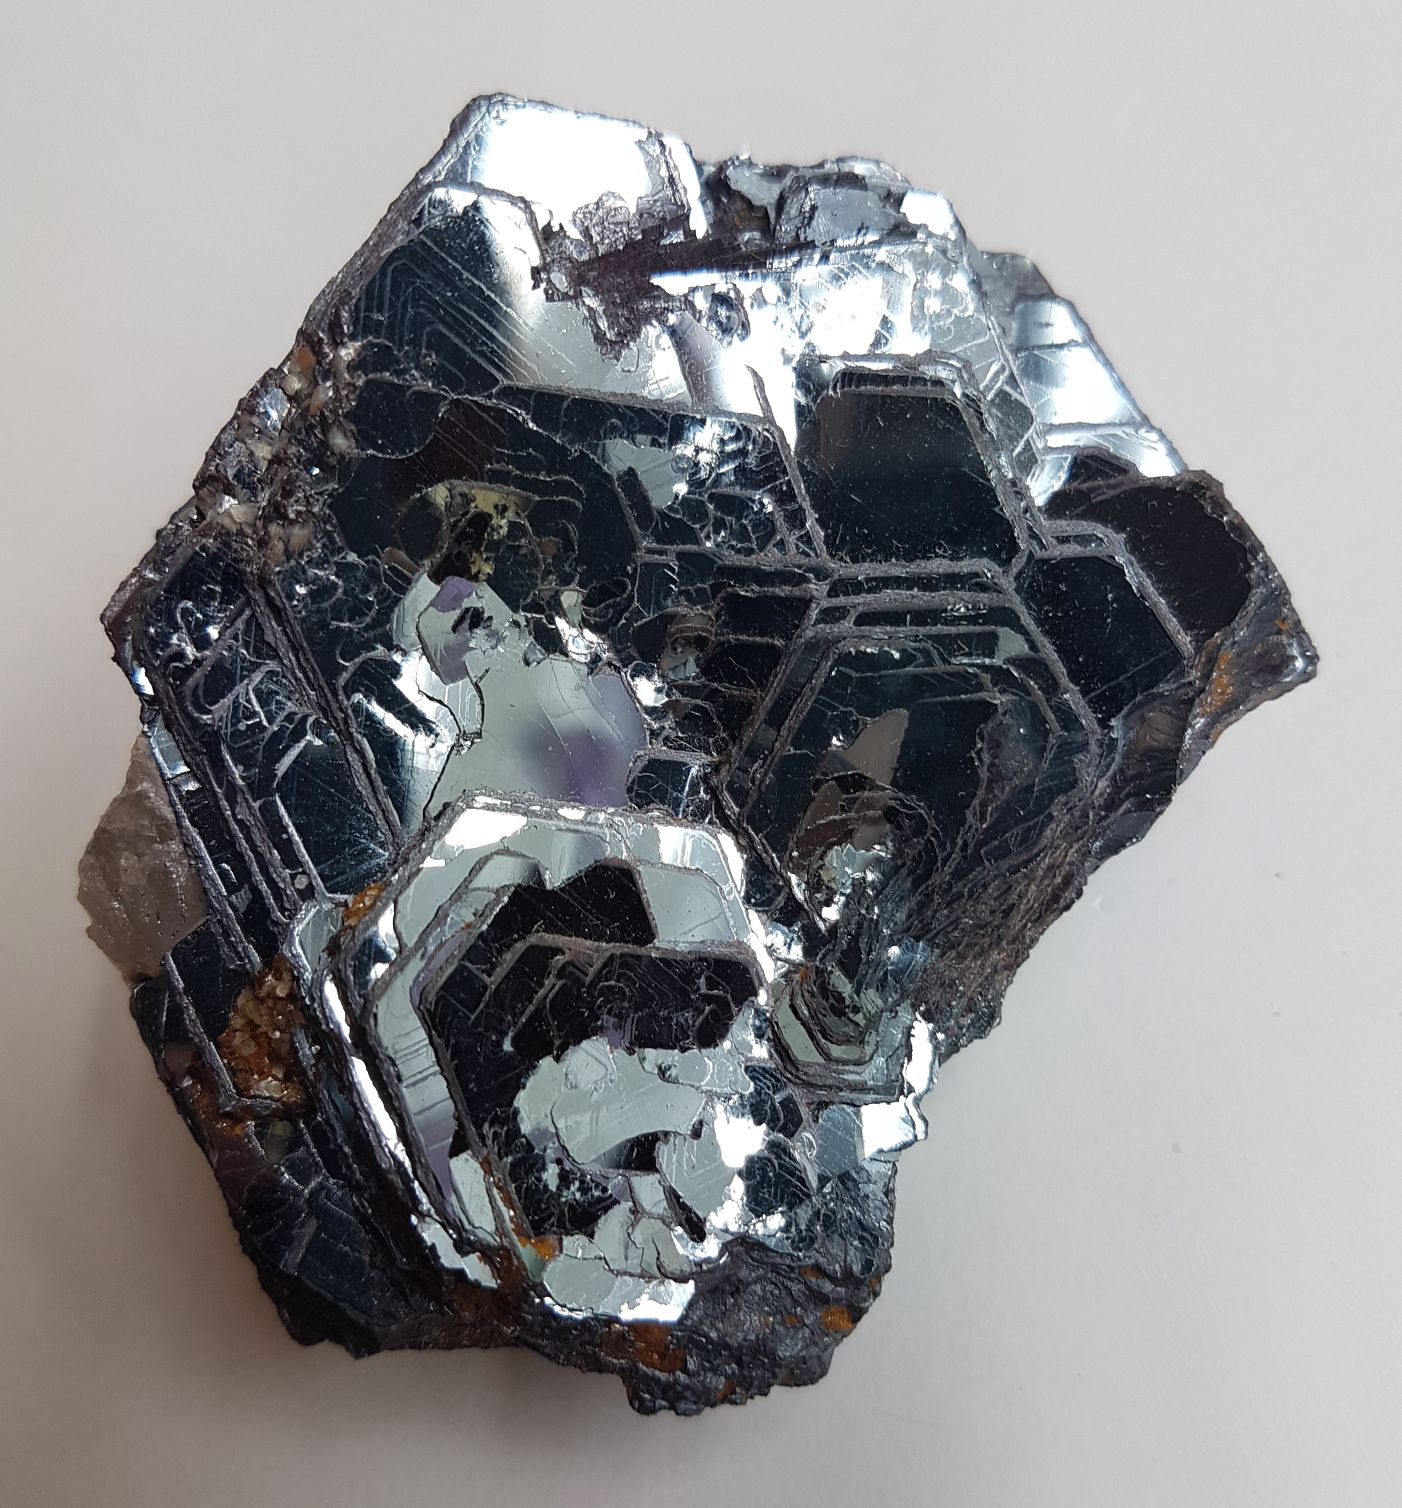 Elegant aggregate of rose-shaped-growth Hematite crystals of outstanding brilliancy.